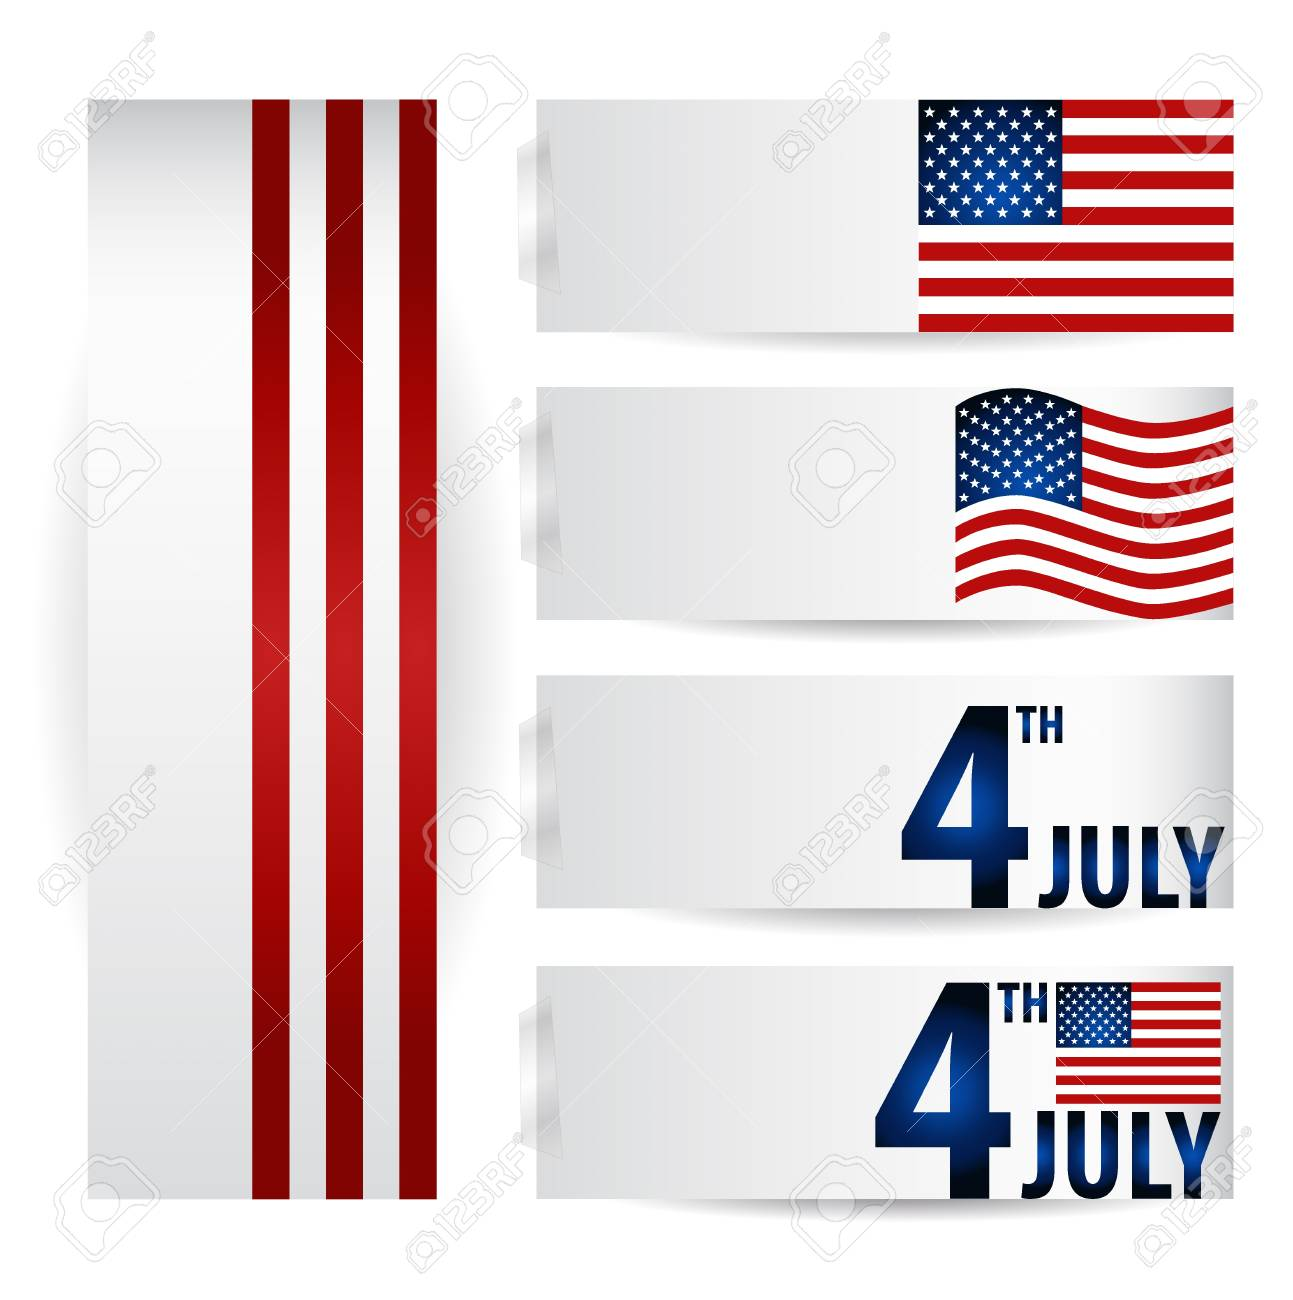 American Flag for Independence Day. Stock Vector - 14238377